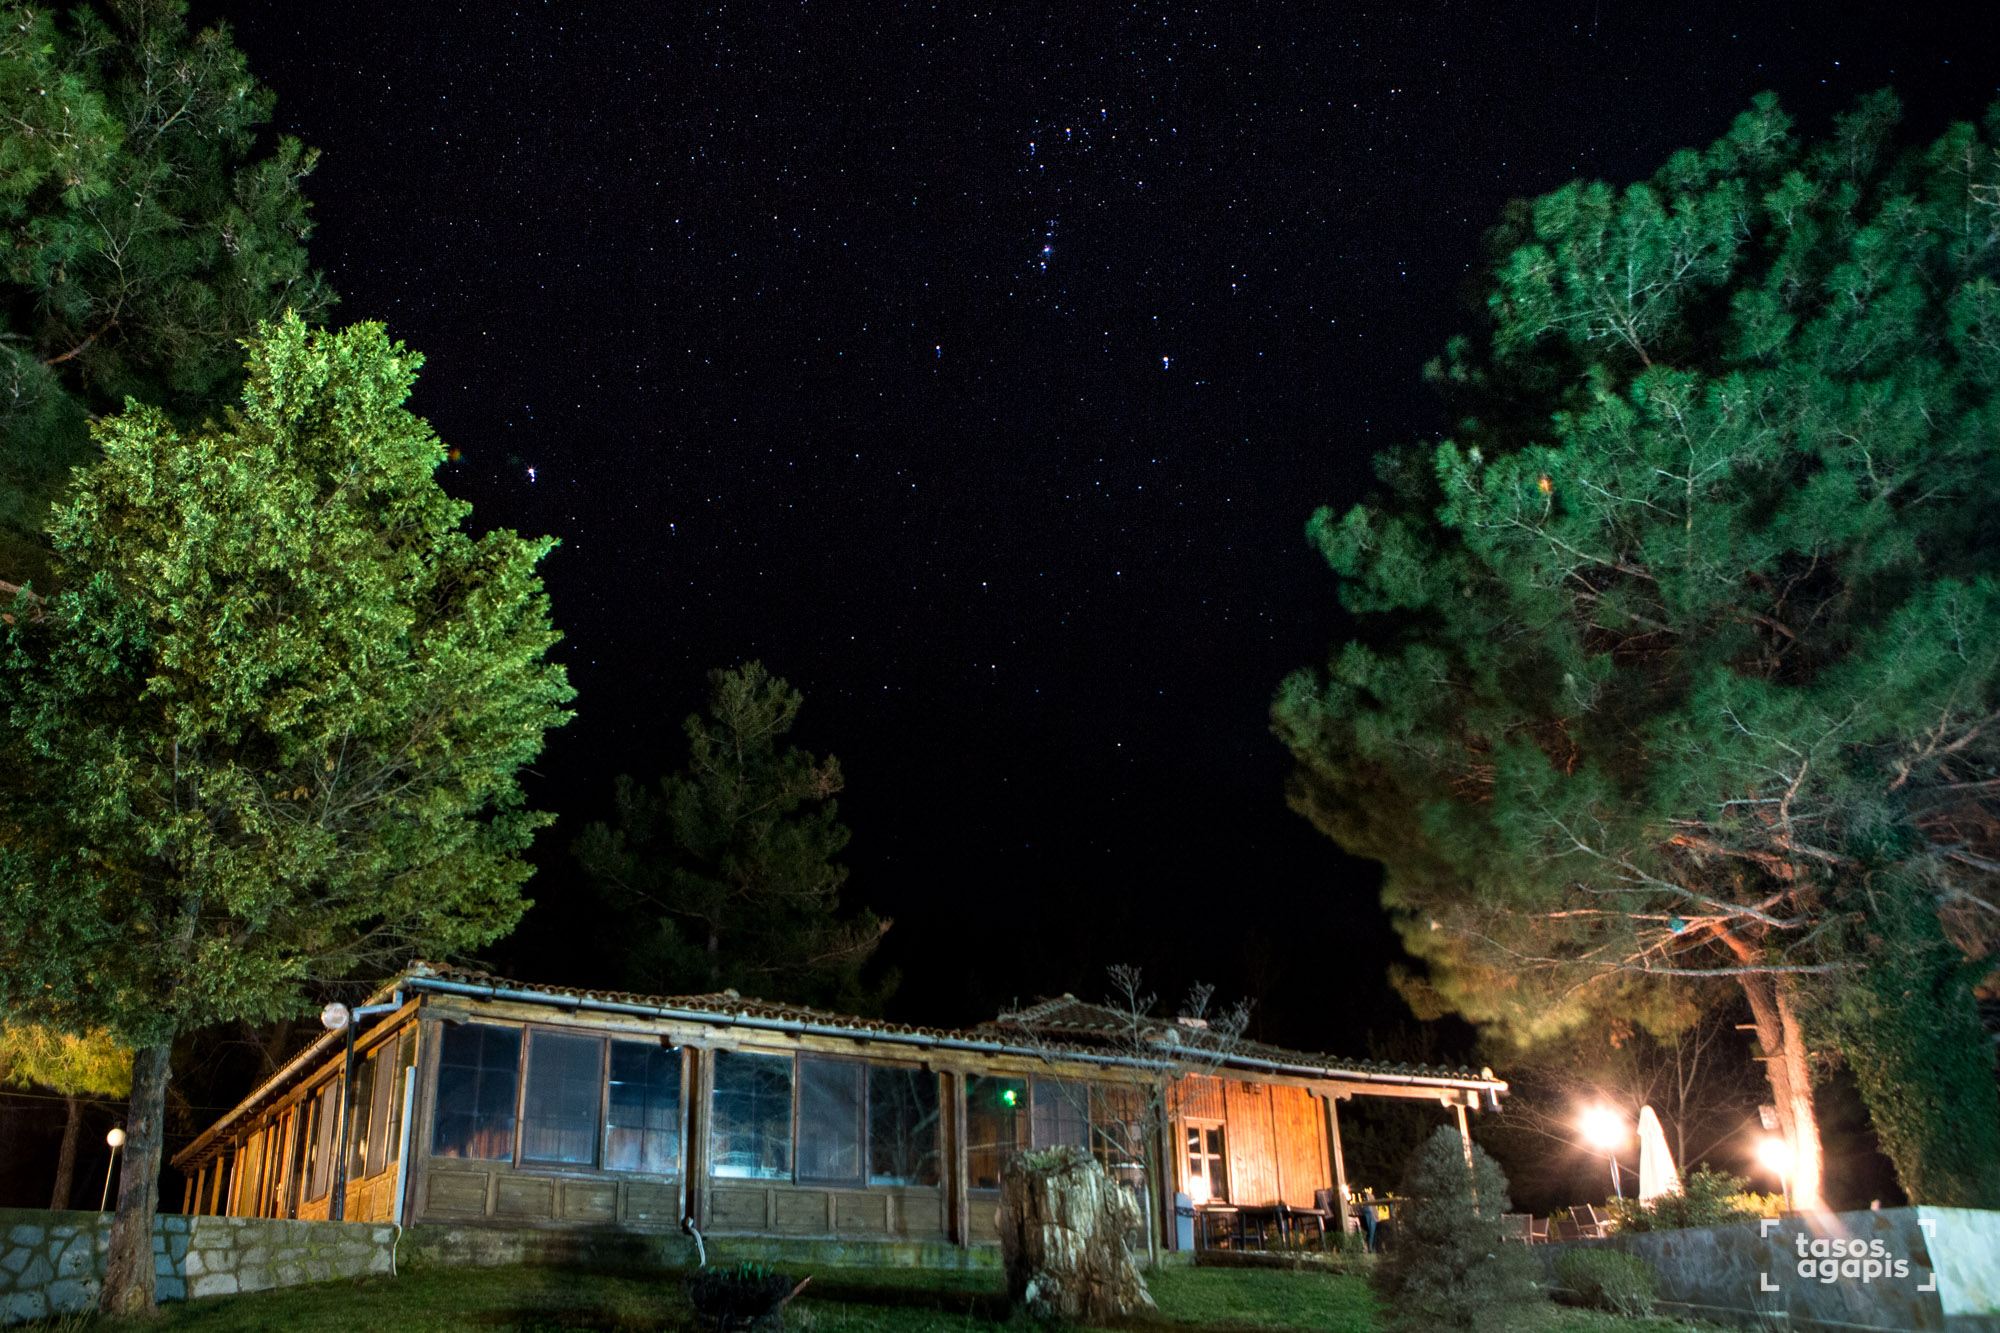 Orion Over a cabin